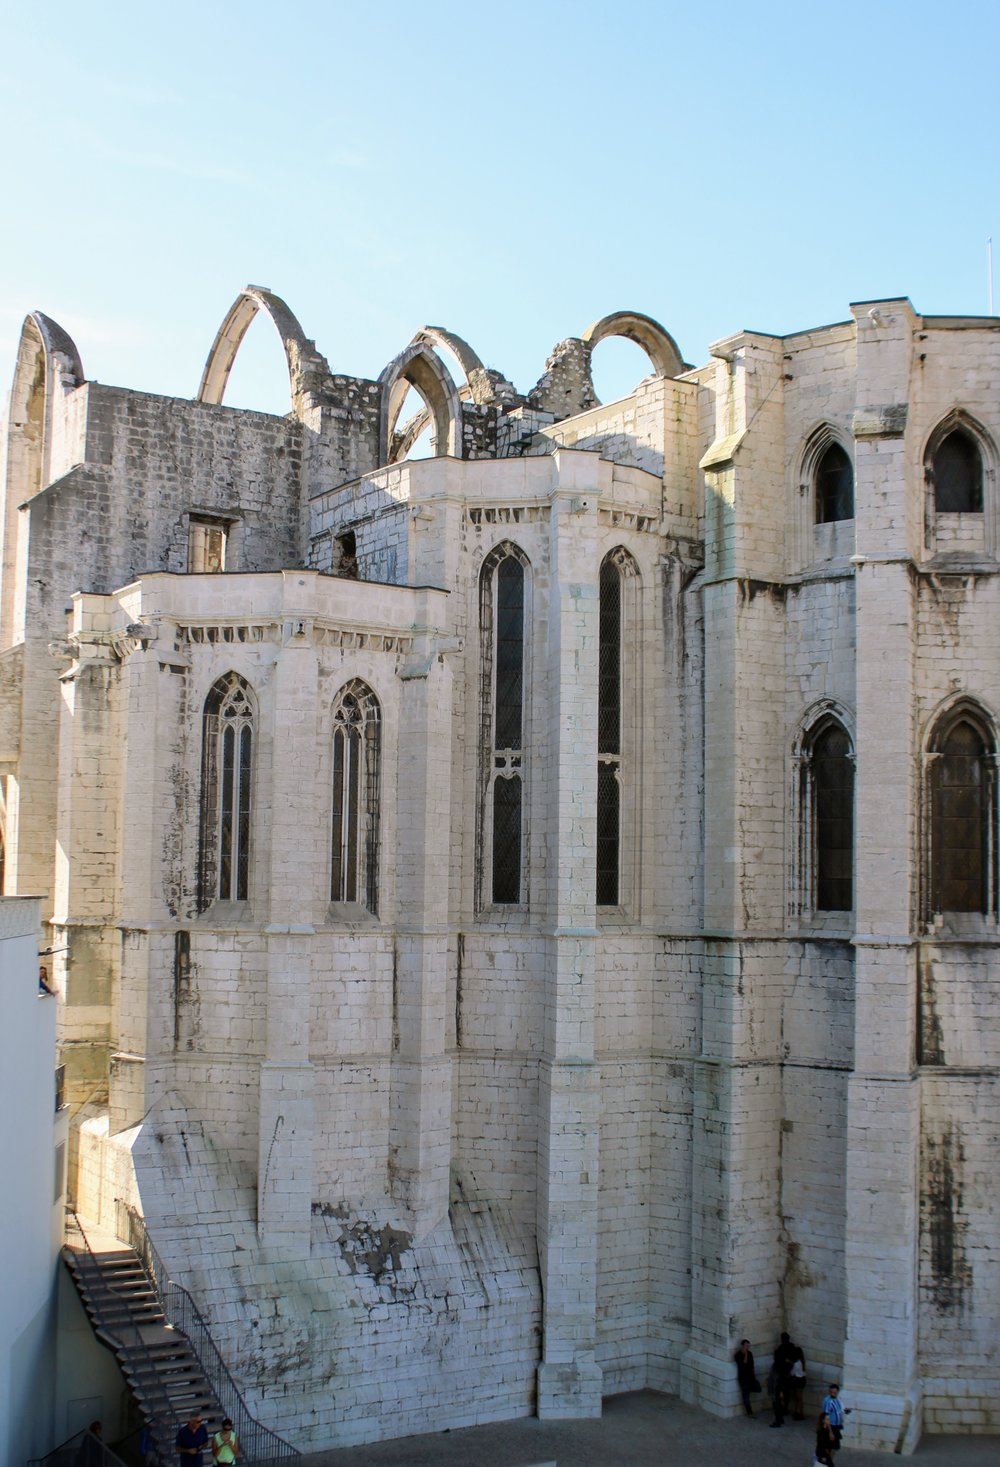 Carmo Convent, which was partially destroyed during an 18th century earthquake that nearly leveled Lisbon.